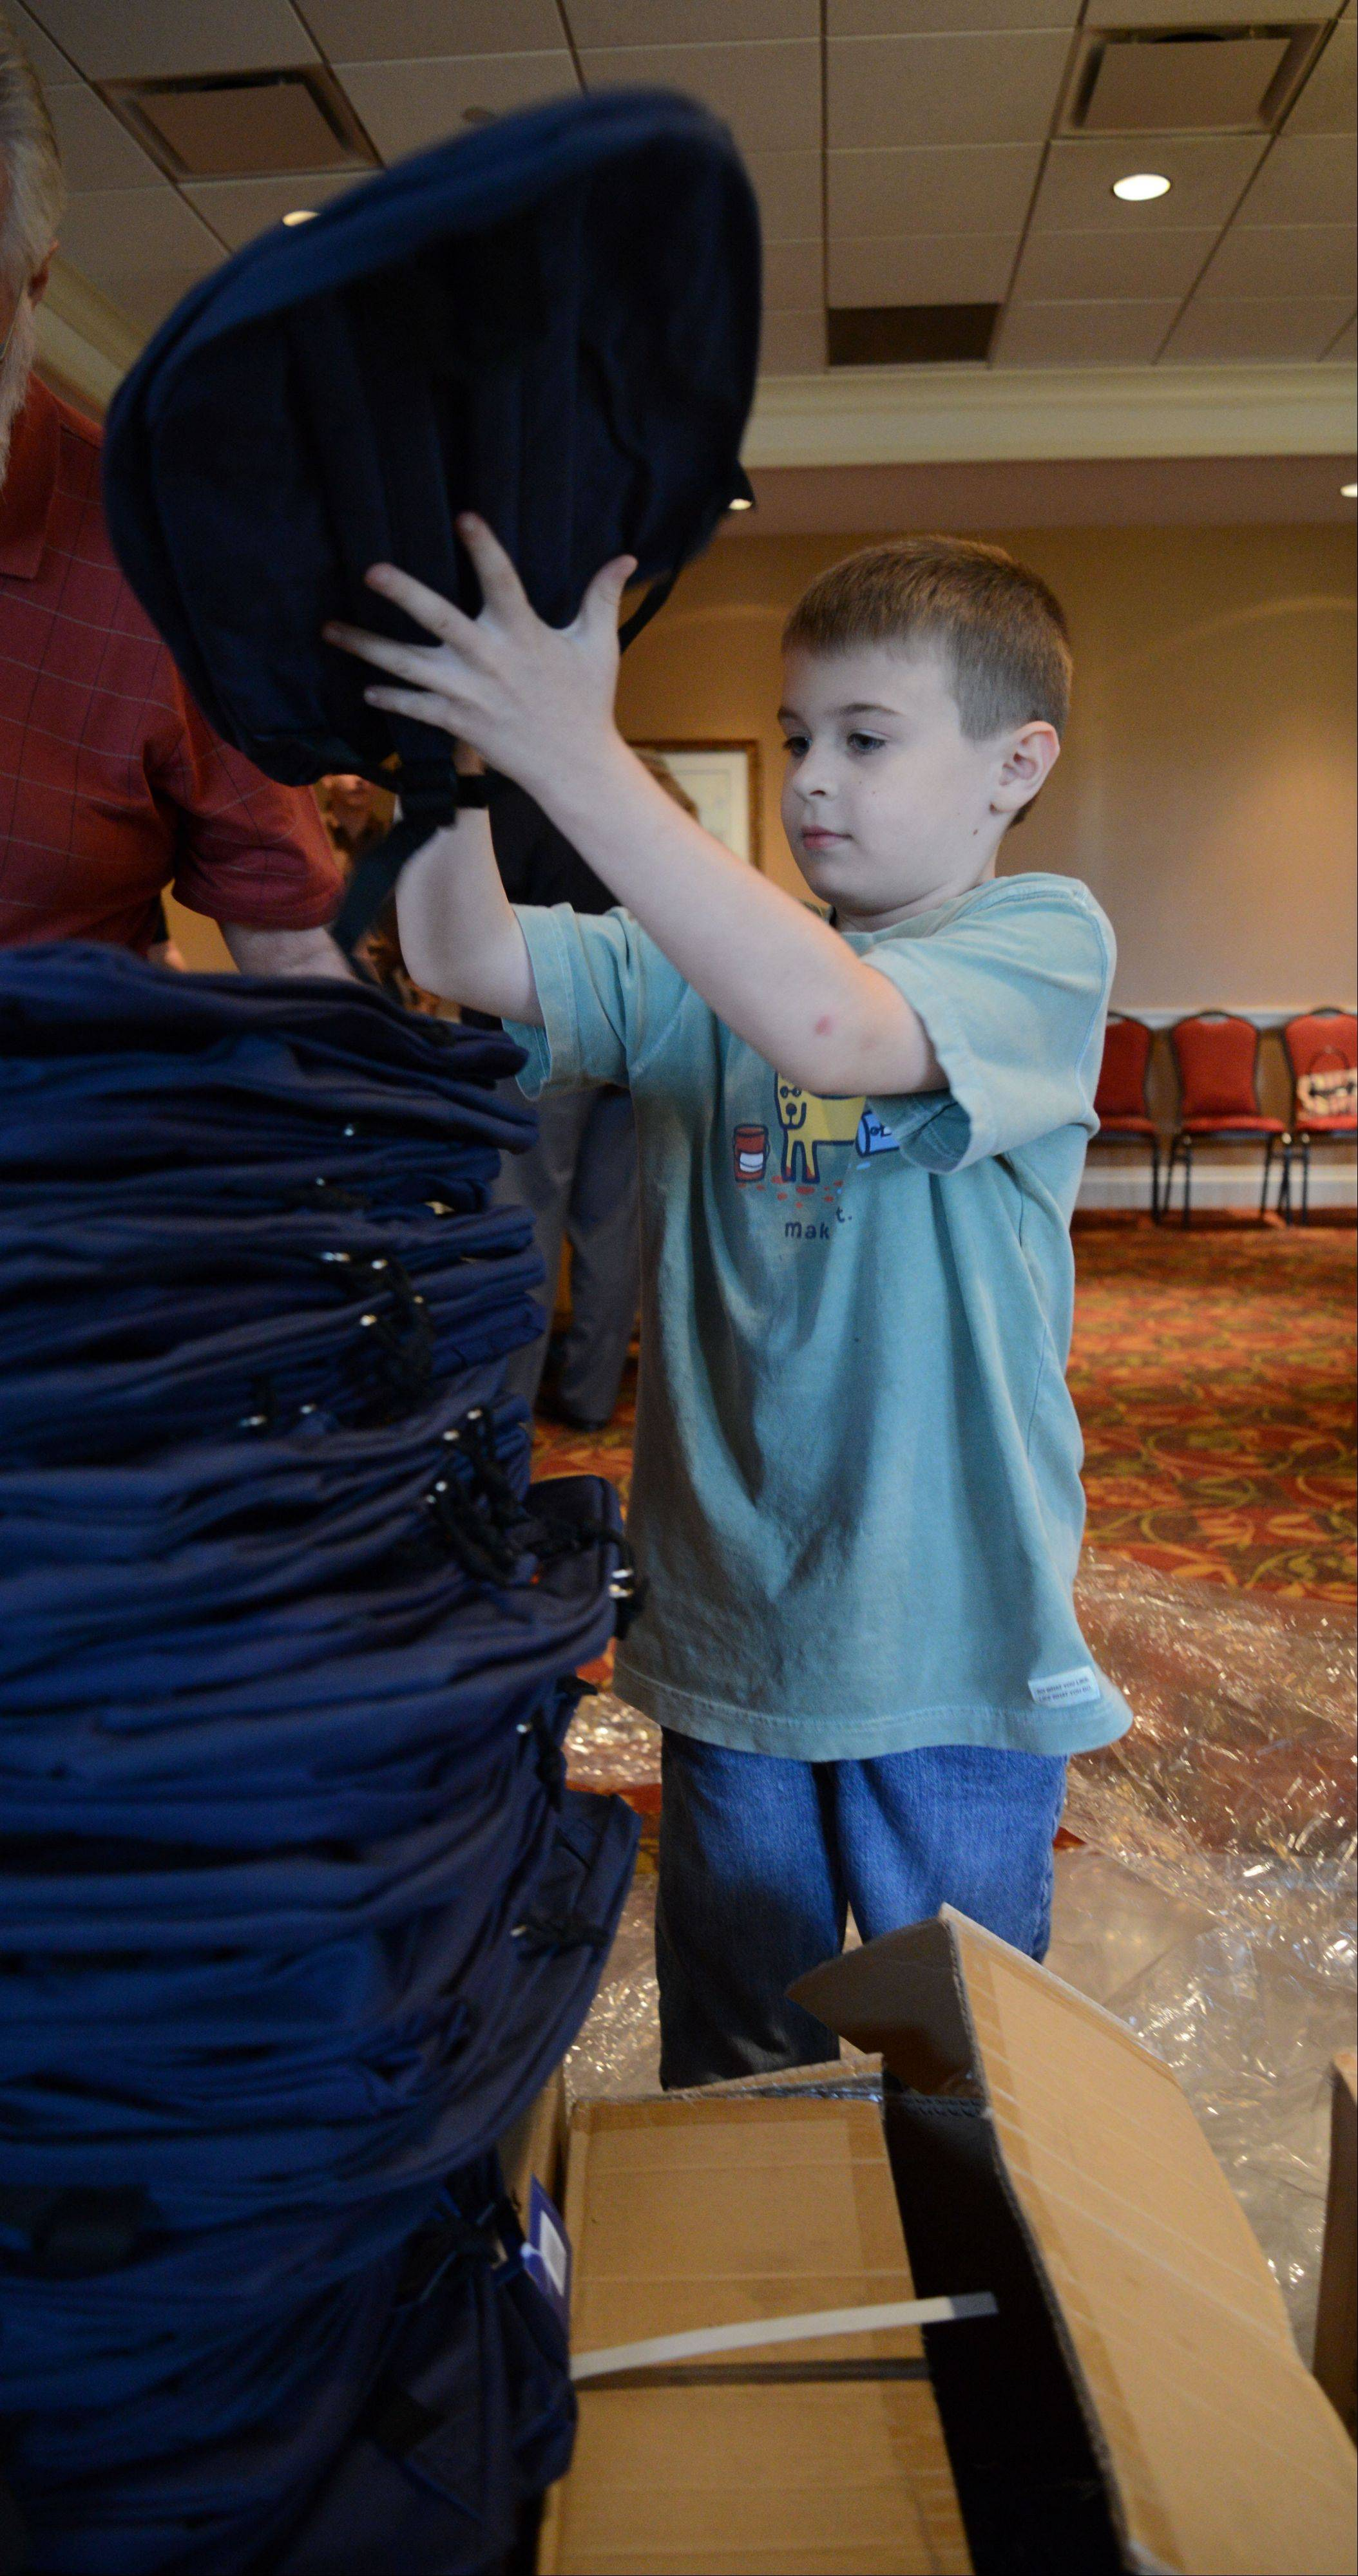 Henry Kunzer, 8, of Naperville stacked backpacks higher than his head while attending the Wheaton Rotary Club's backpack stuffing event at Arrowhead Golf Course club house Thursday.